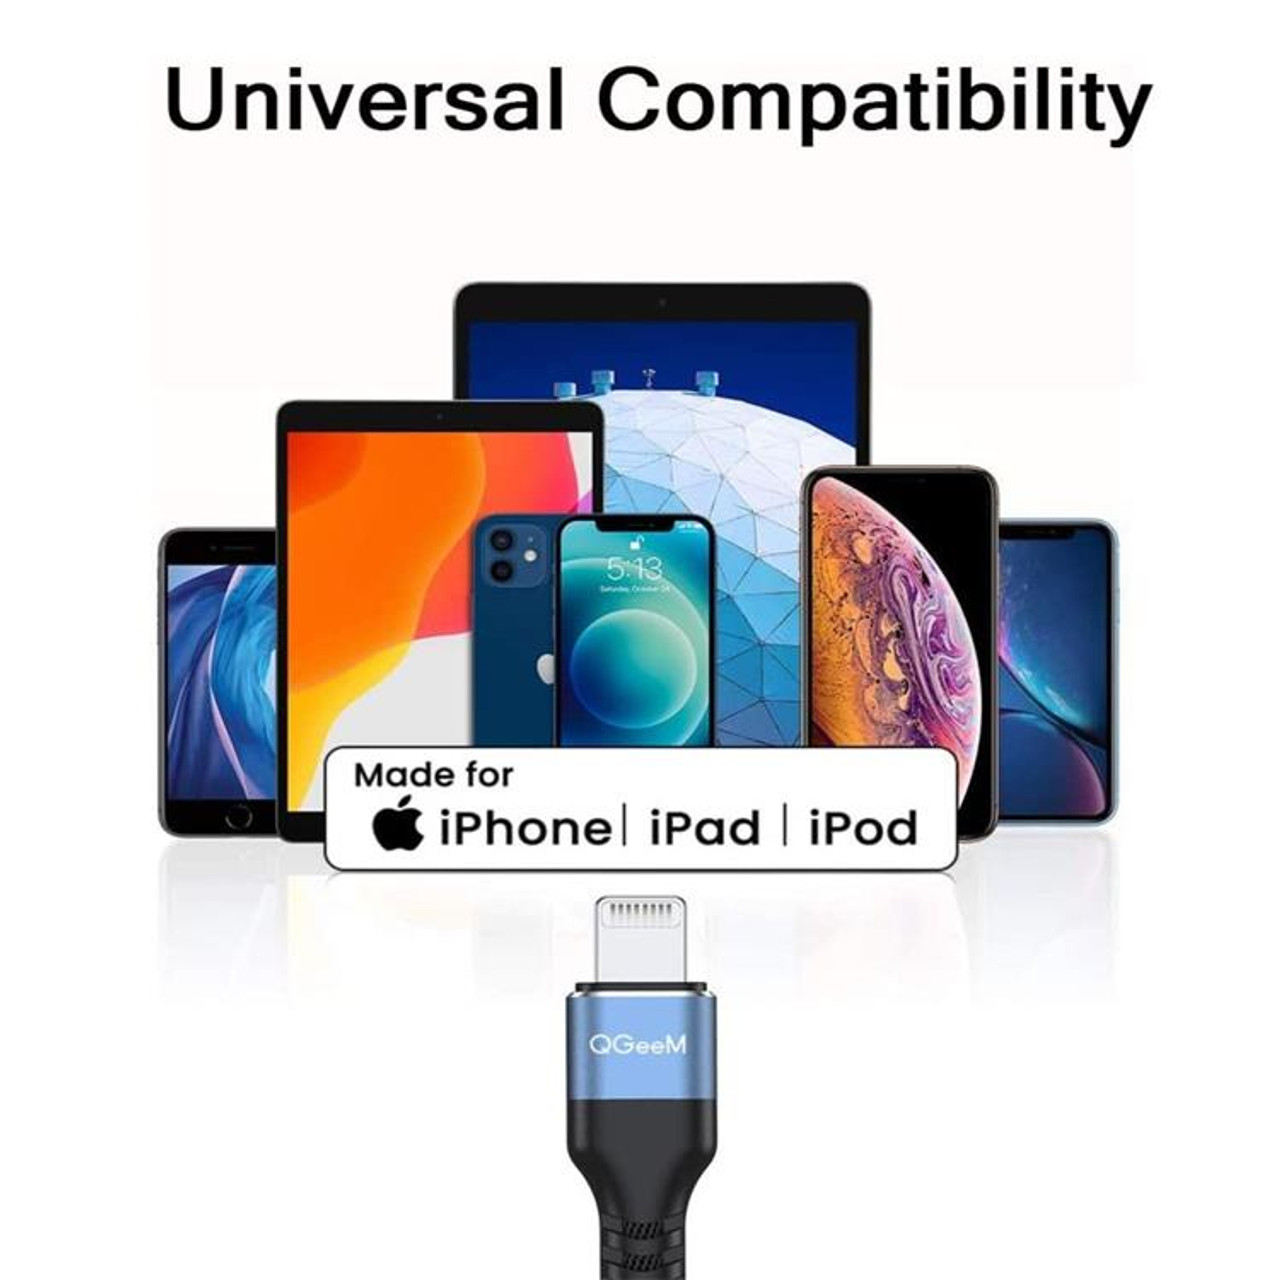 2M Apple MFI Certified USB to Lightning Cable